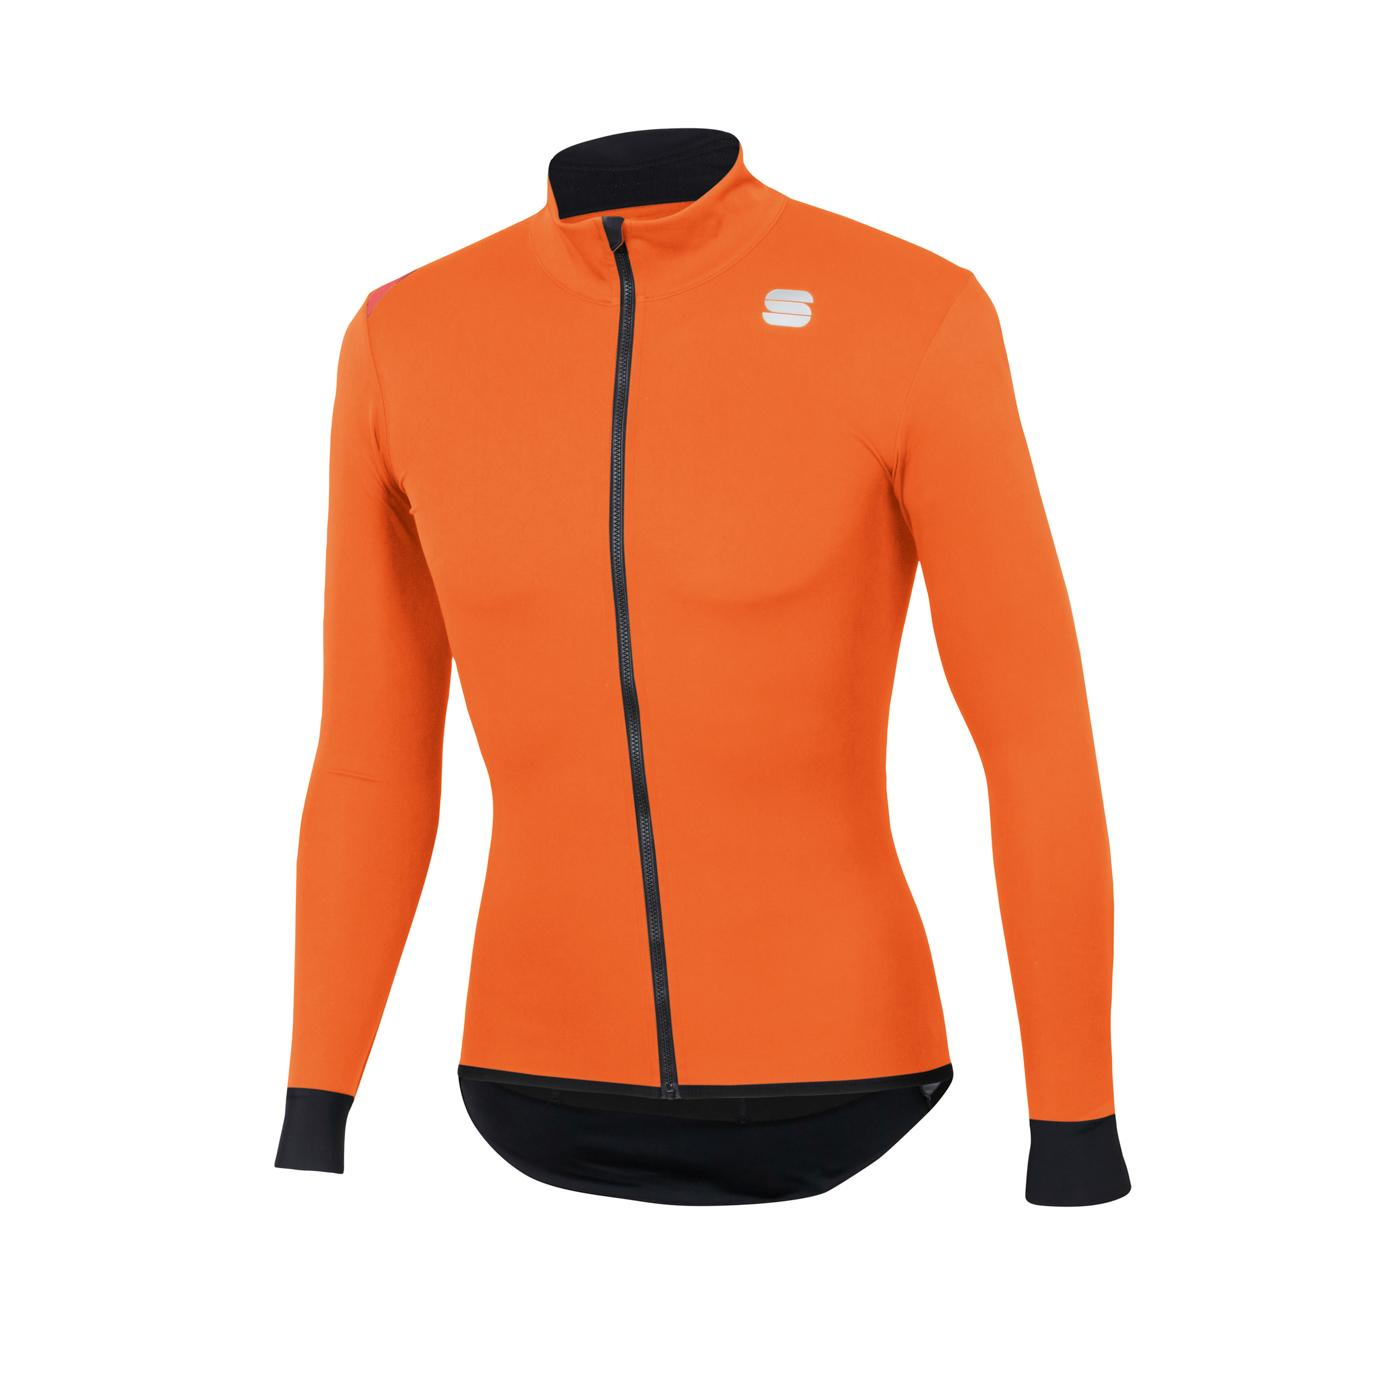 Sportful Fietsjack Lange mouwen Zeer sterk waterafstotend voor Heren Oranje - SF Fiandre Light No Rain Jacket-Orange Sdr